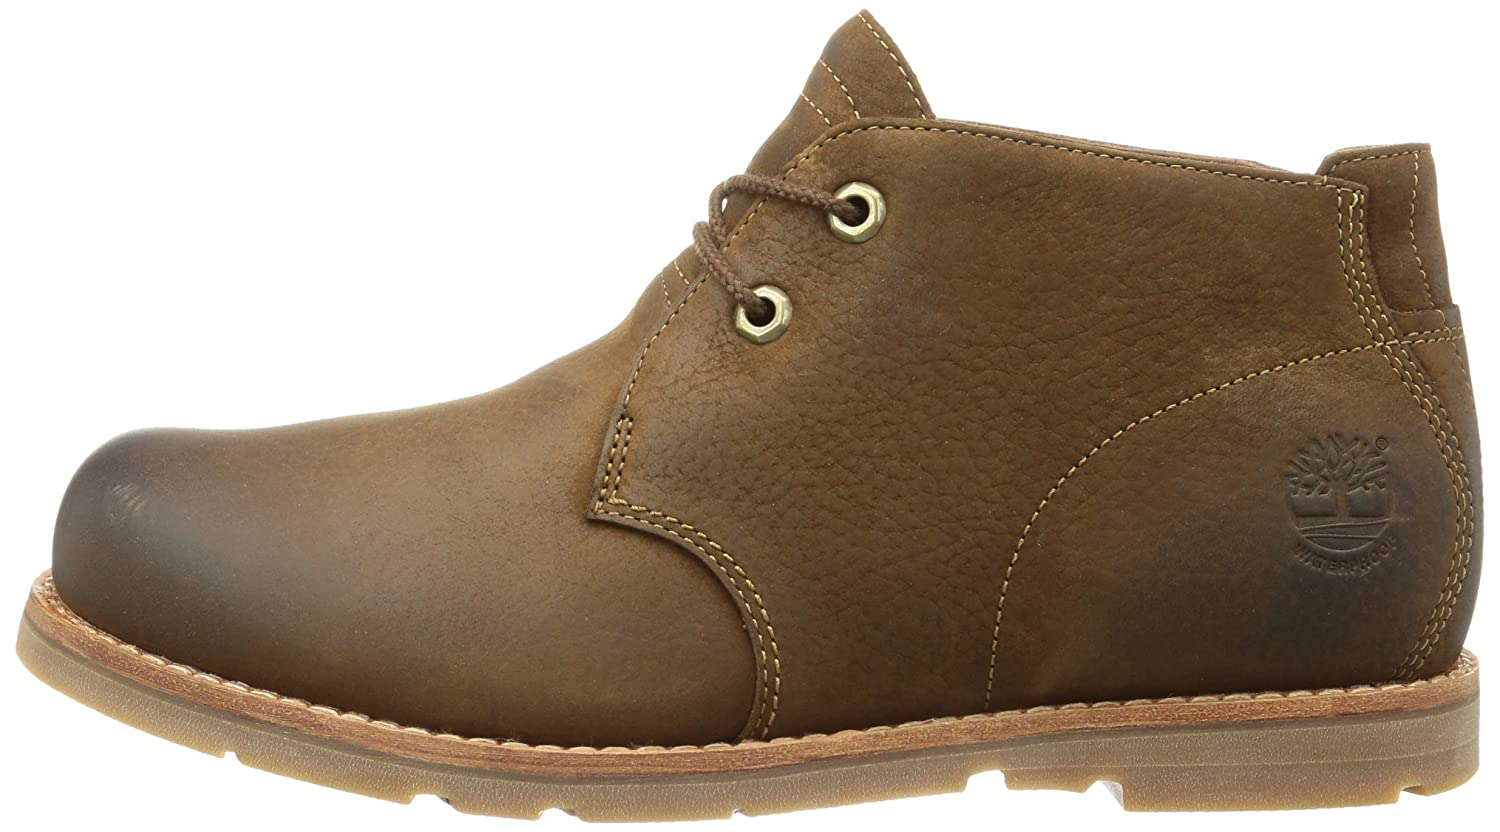 Les Earthkeepers Hommes Timberland Bottes Lt Chukka Robuste qtnm6G